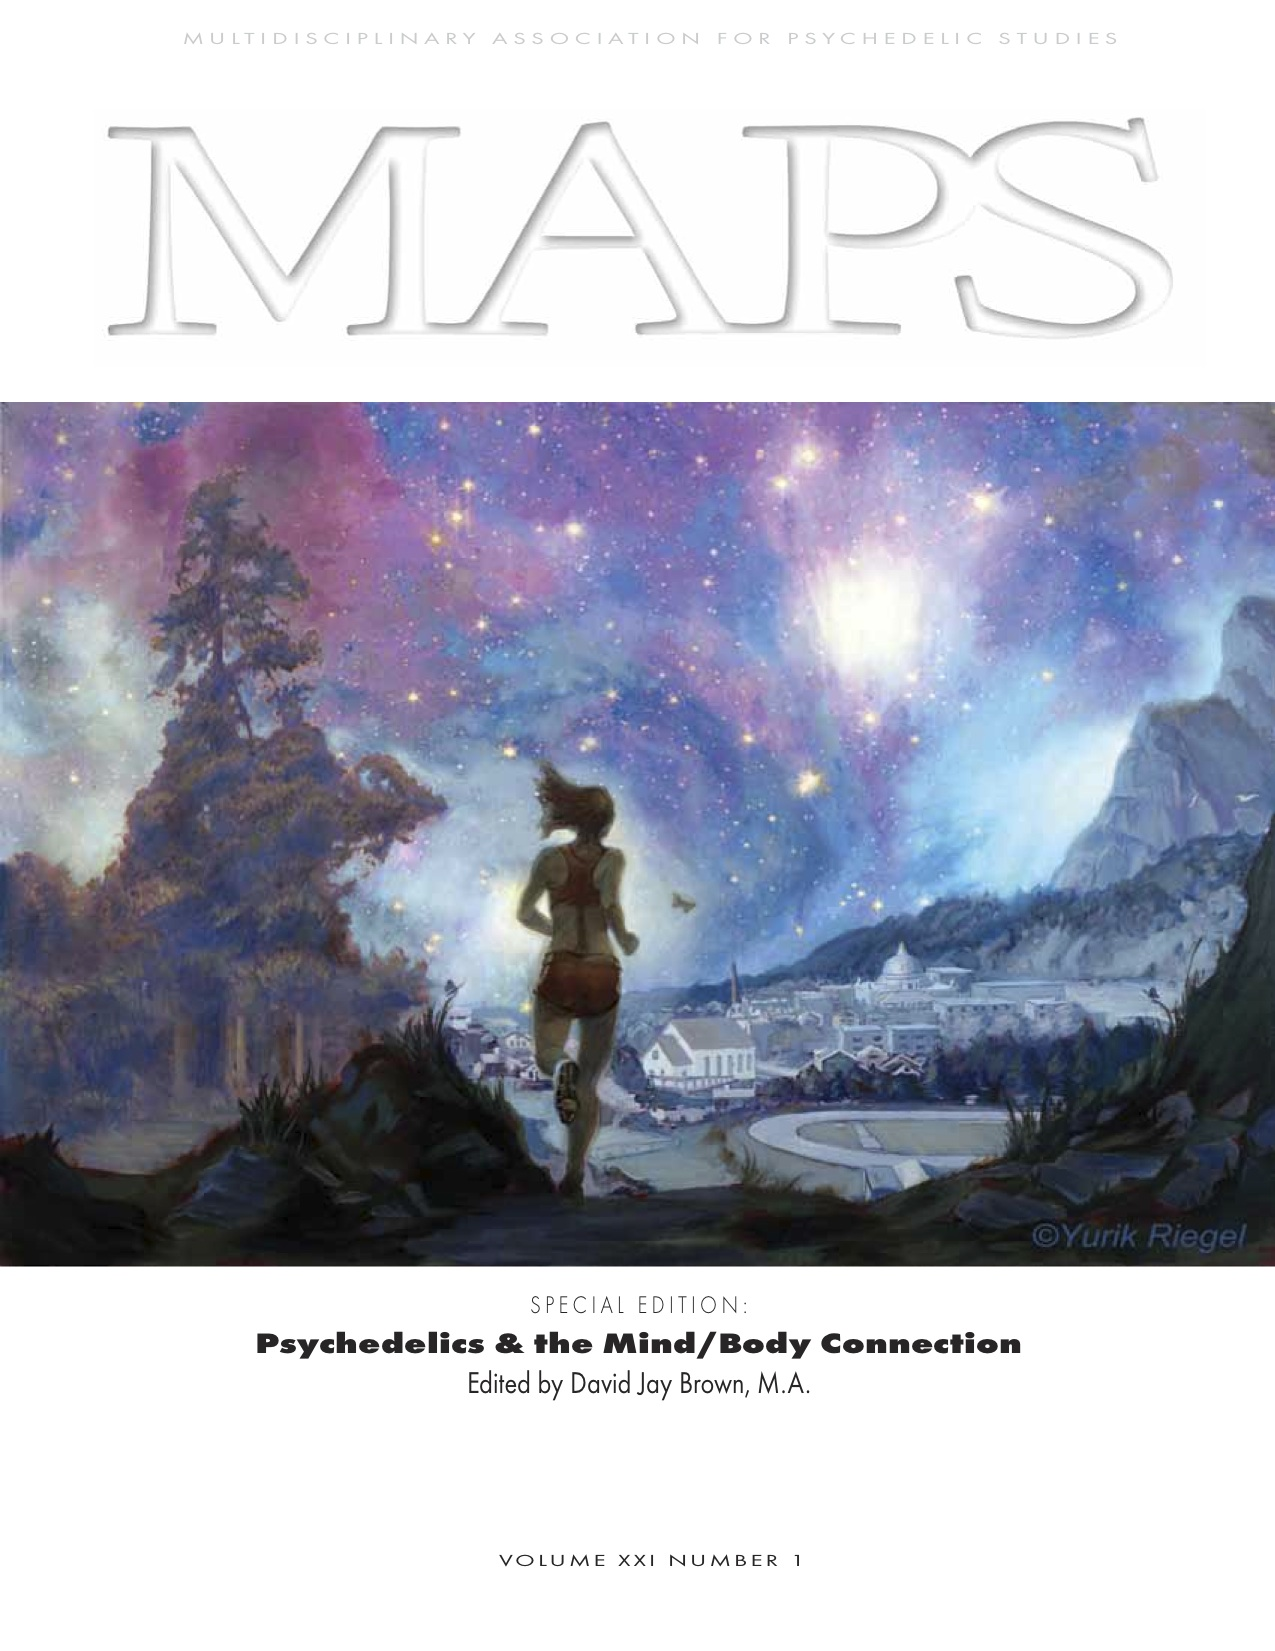 Spring 2011 Vol. 21, No. 1 Special Edition: Psychedelics & the Mind/Body Connection